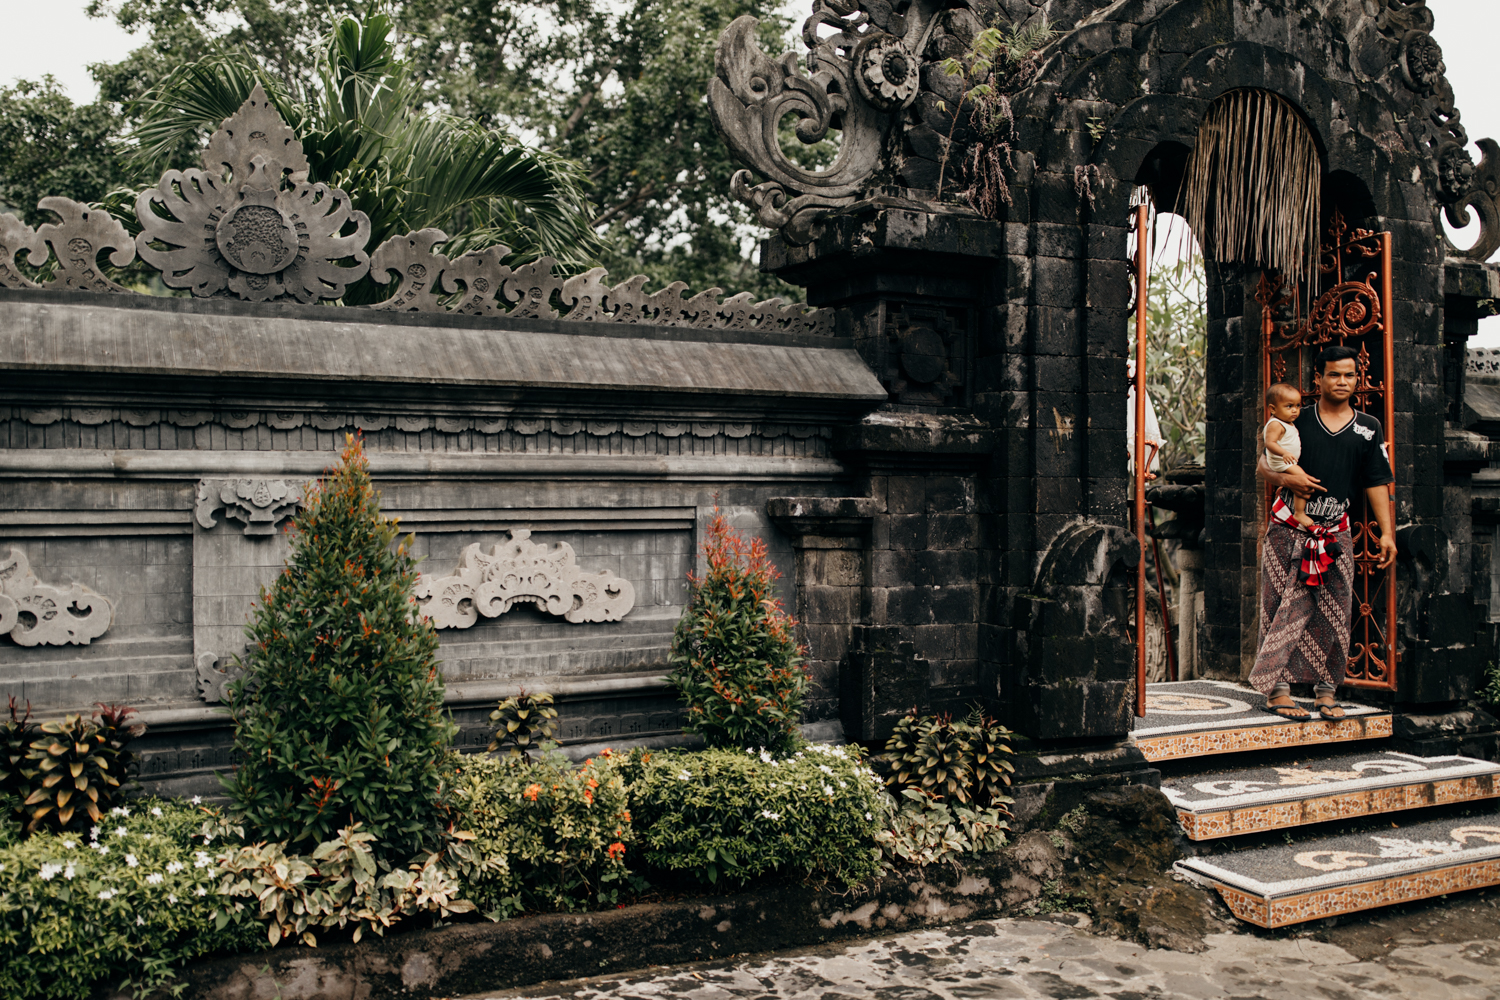 Father with kid on arm at temple entrance in Bali, Indonesia